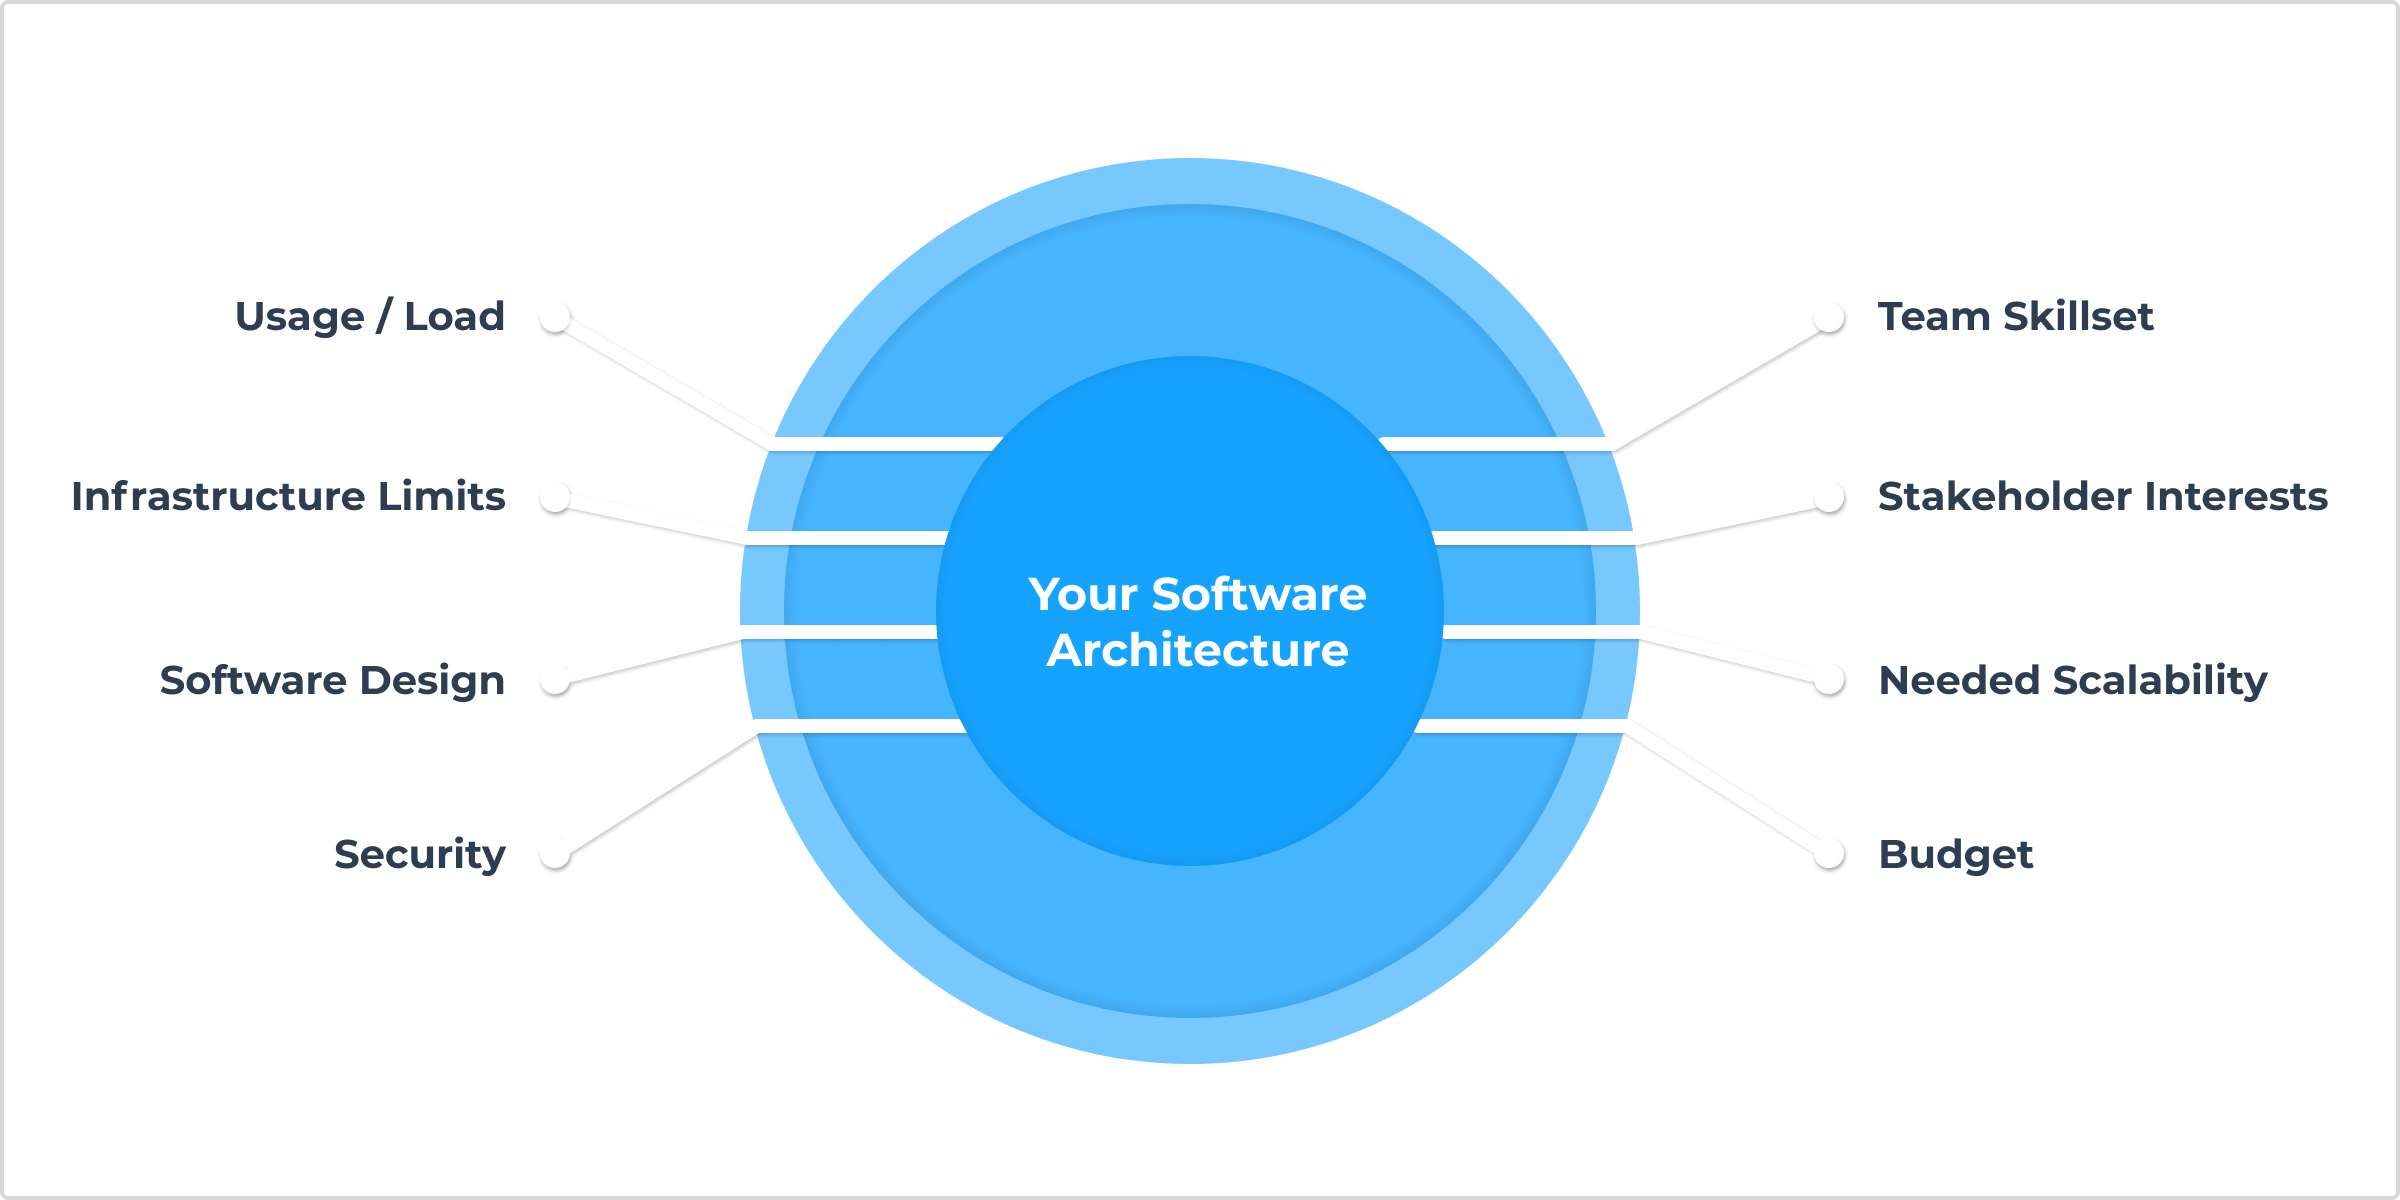 A variety of perspectives are important when creating your software architecture